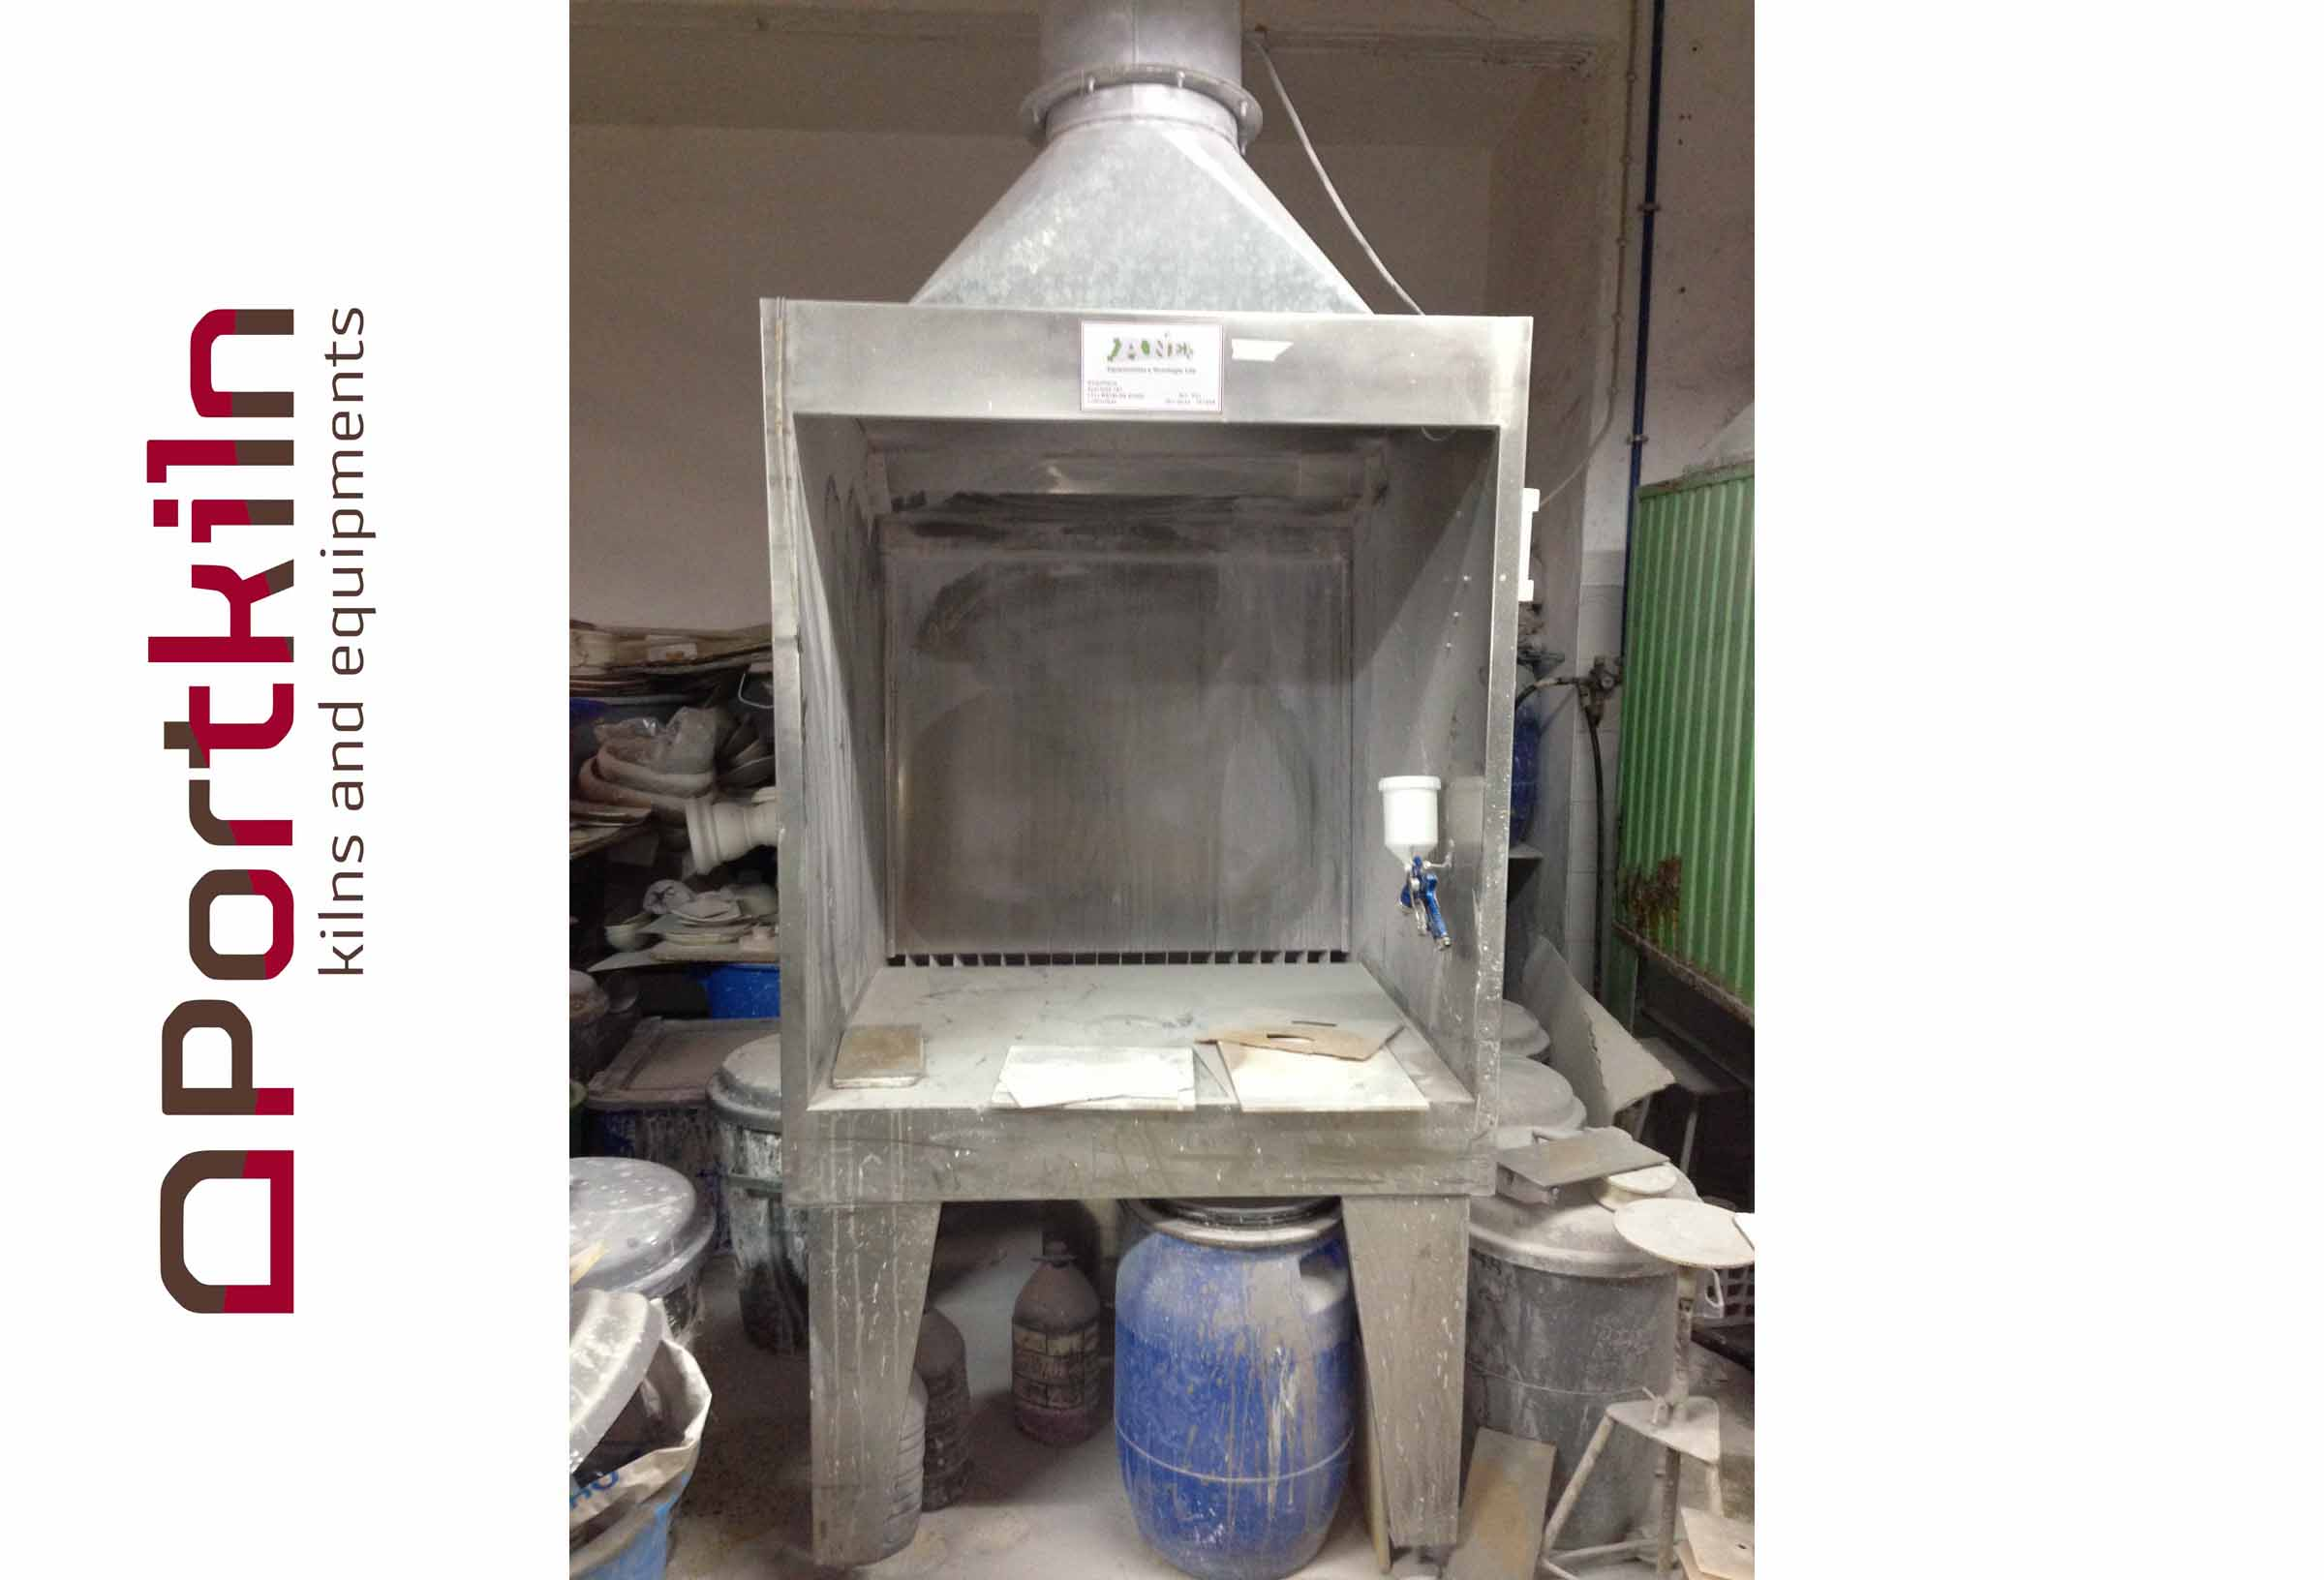 REF.2013016  SPRAY BOOTH